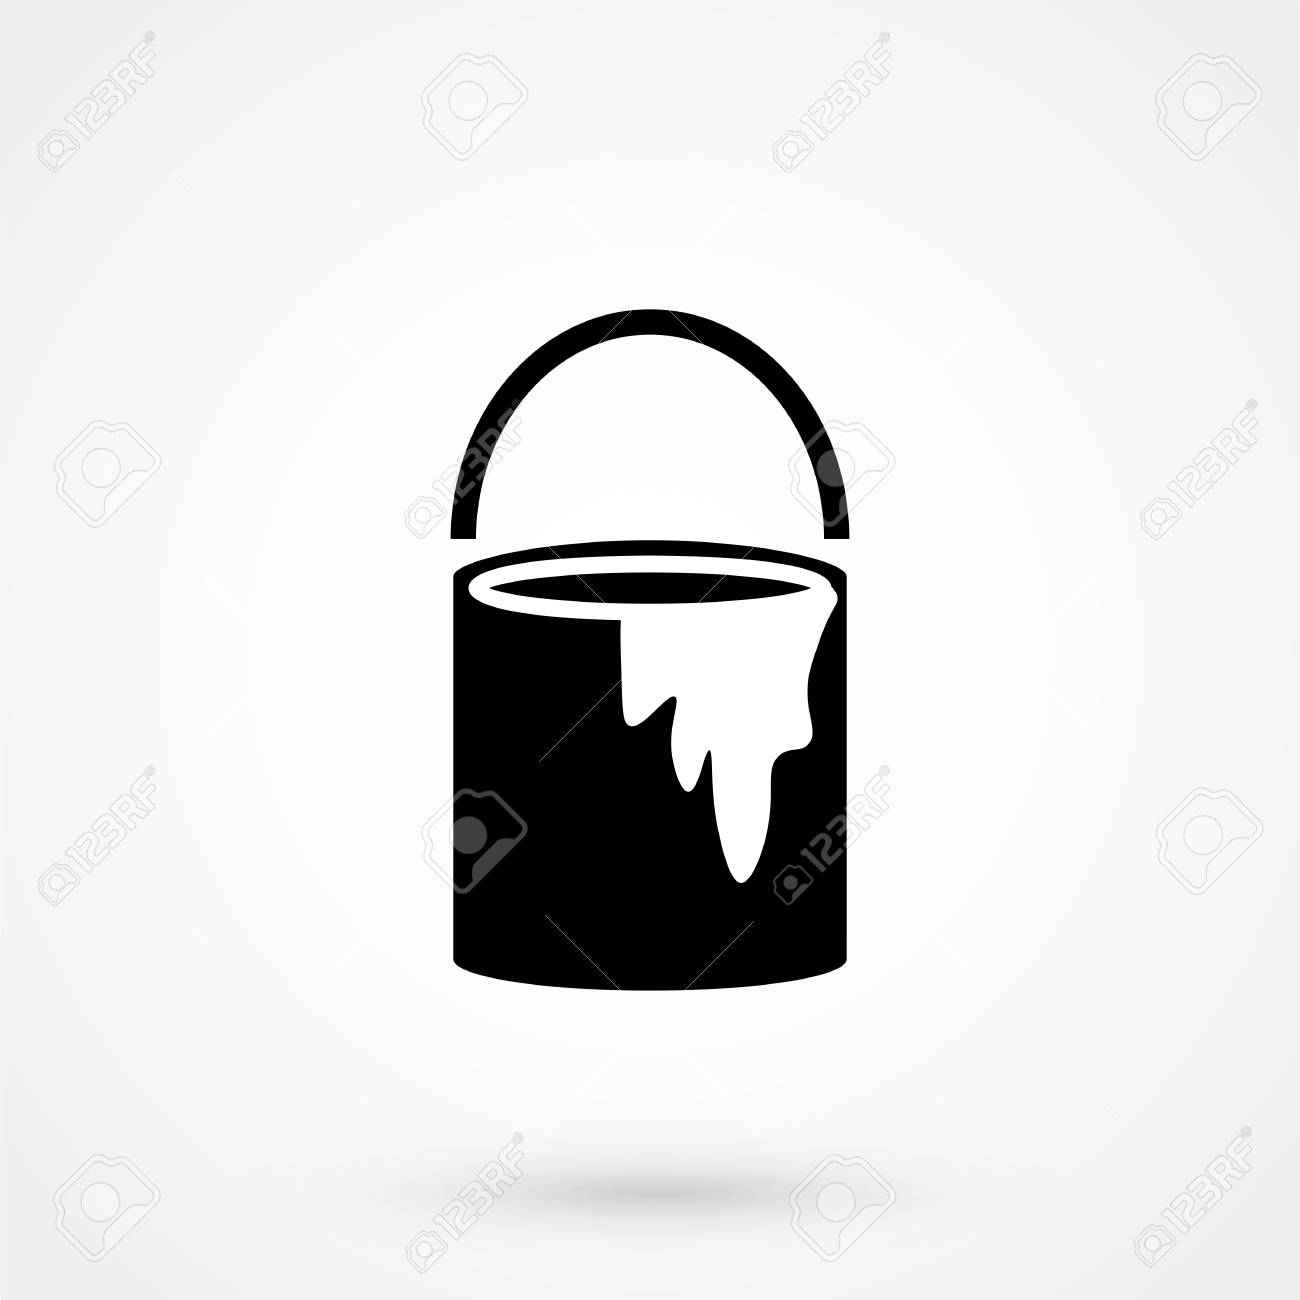 Paint Bucket Icon Paint Bucket Vector Illustration Royalty Free Cliparts Vectors And Stock Illustration Image 89840036